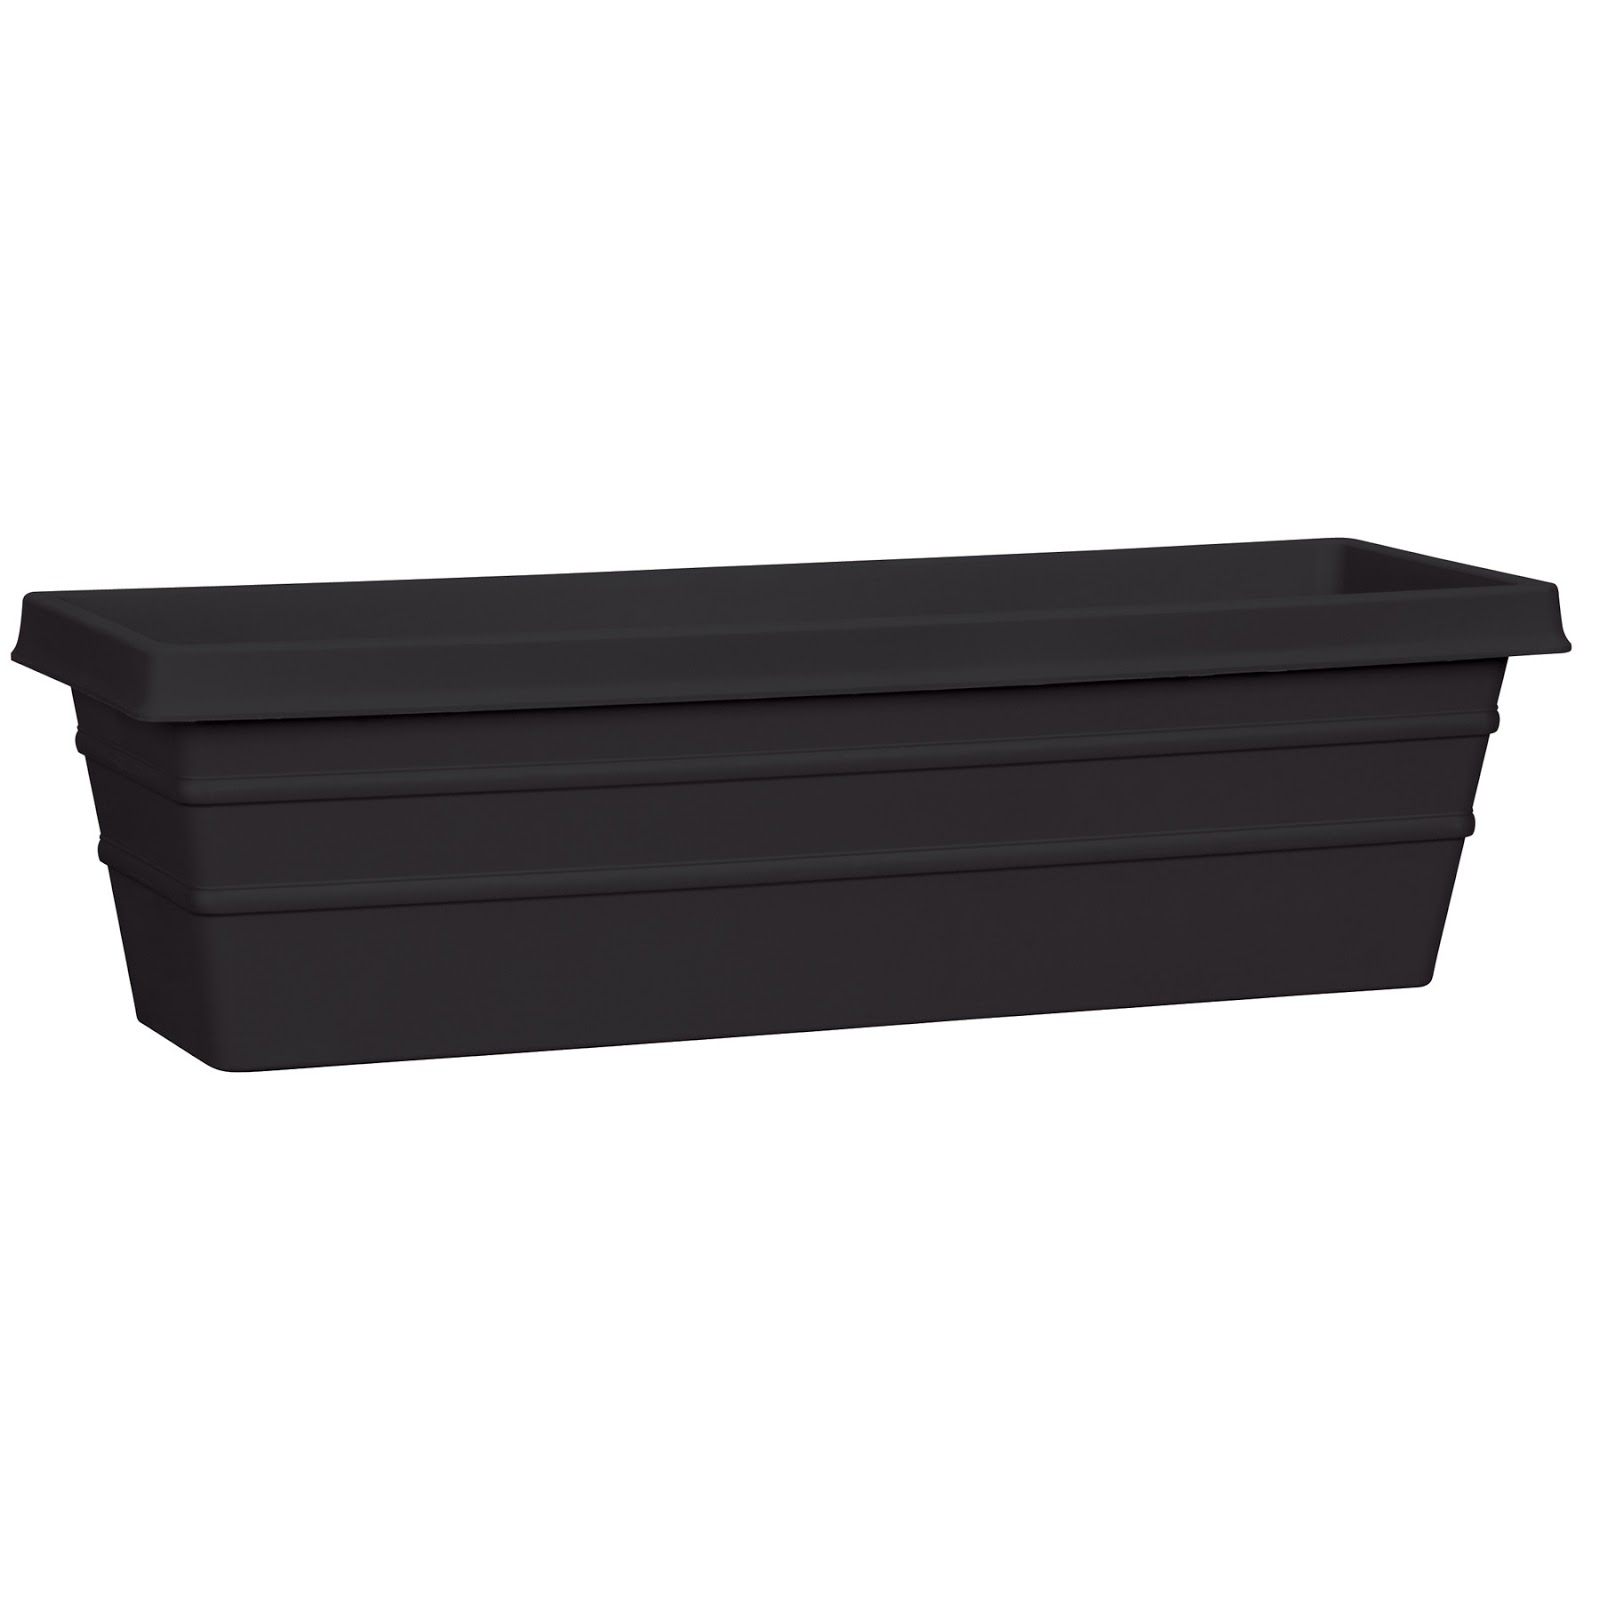 planter the aquasav p accessories products in miscellaneous coco liner depot garden pride liners home